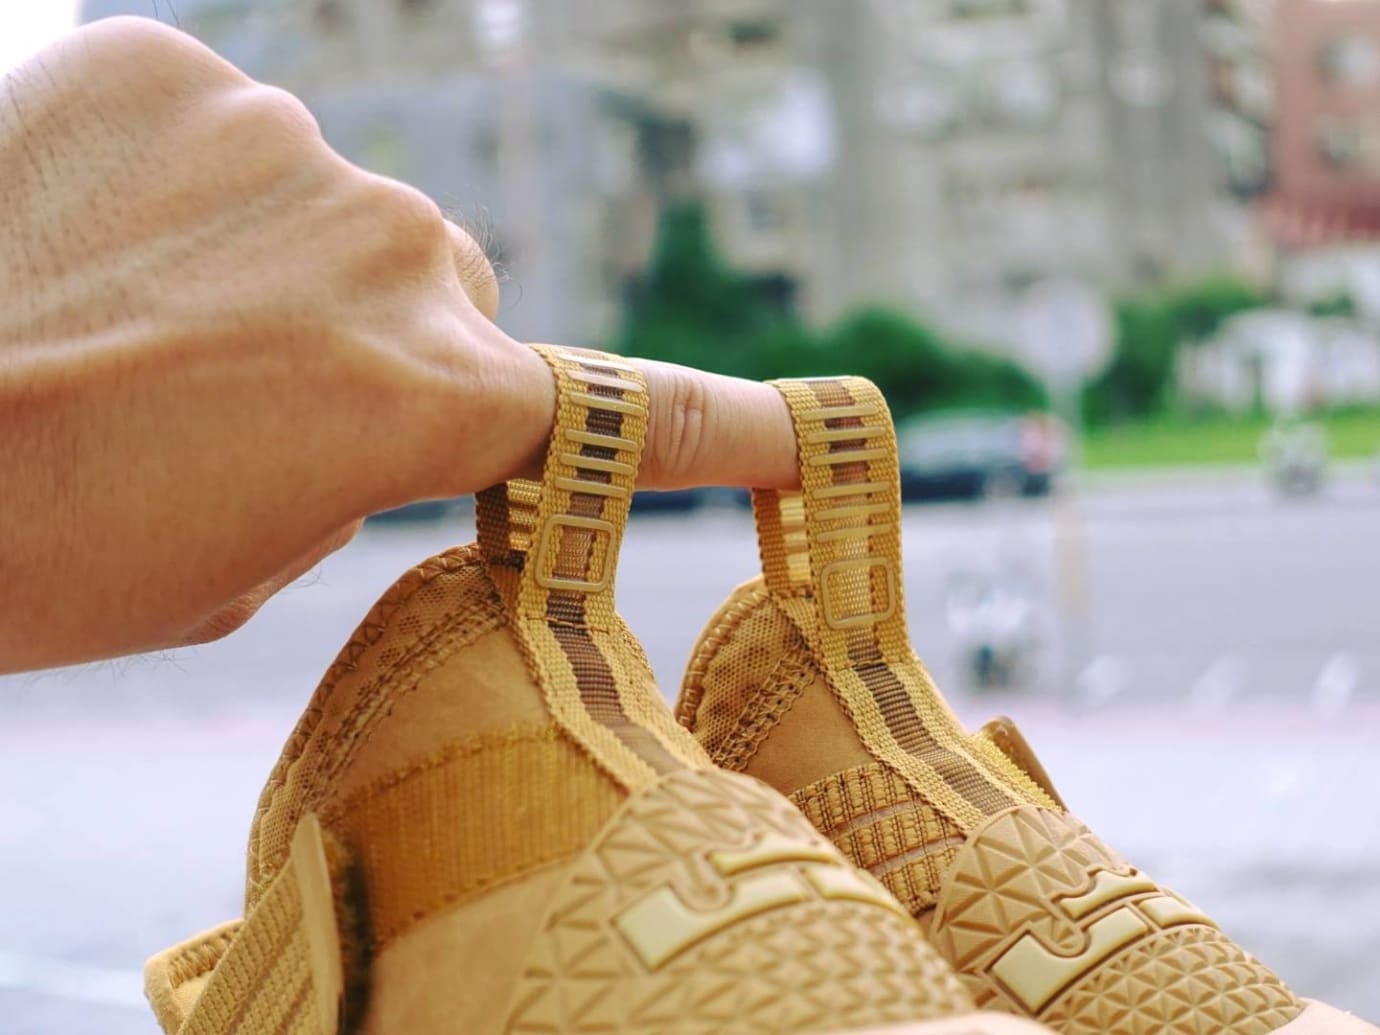 Nike LeBron Soldier 11 SFG Wheat Release Date 897647-700 (6)